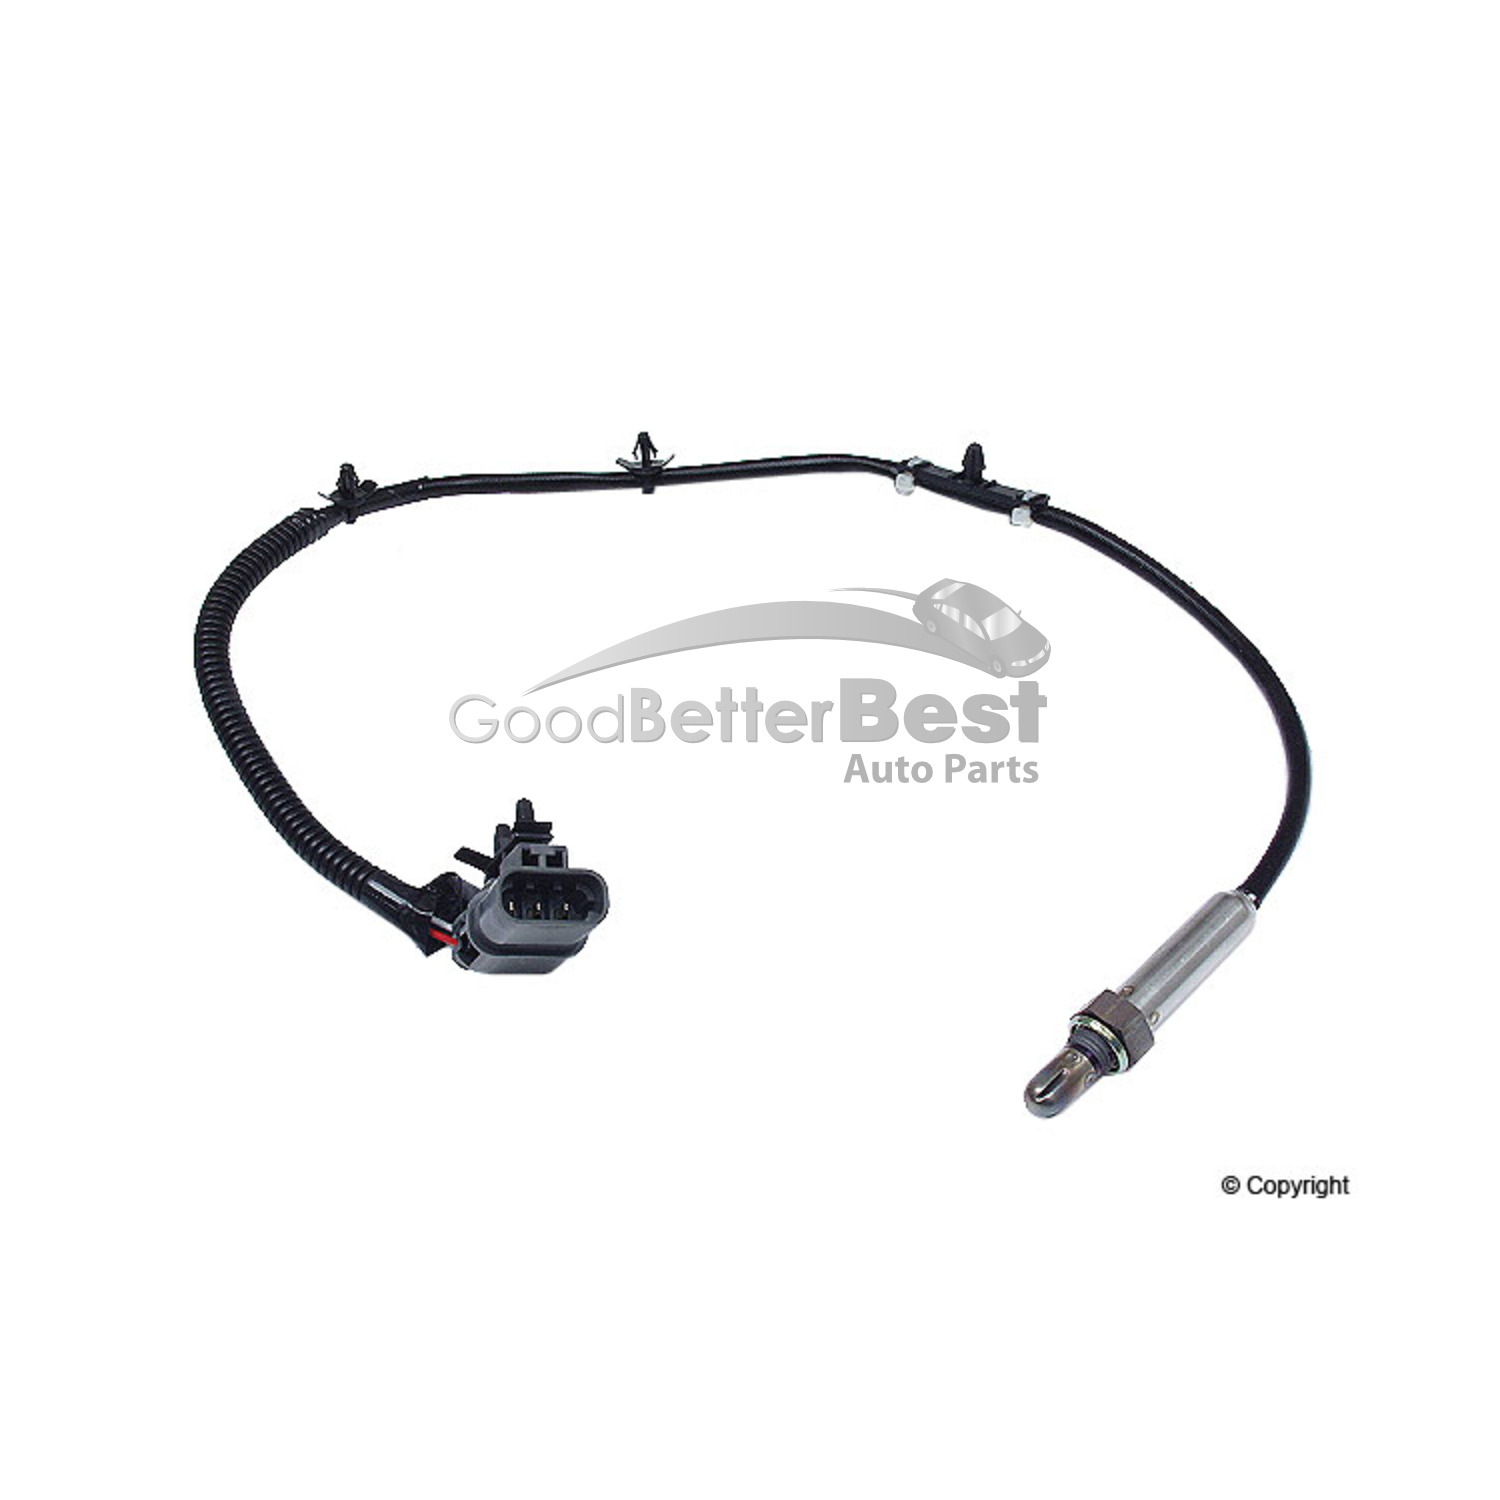 New Ntk Oxygen Sensor Front For Mercury Nissan